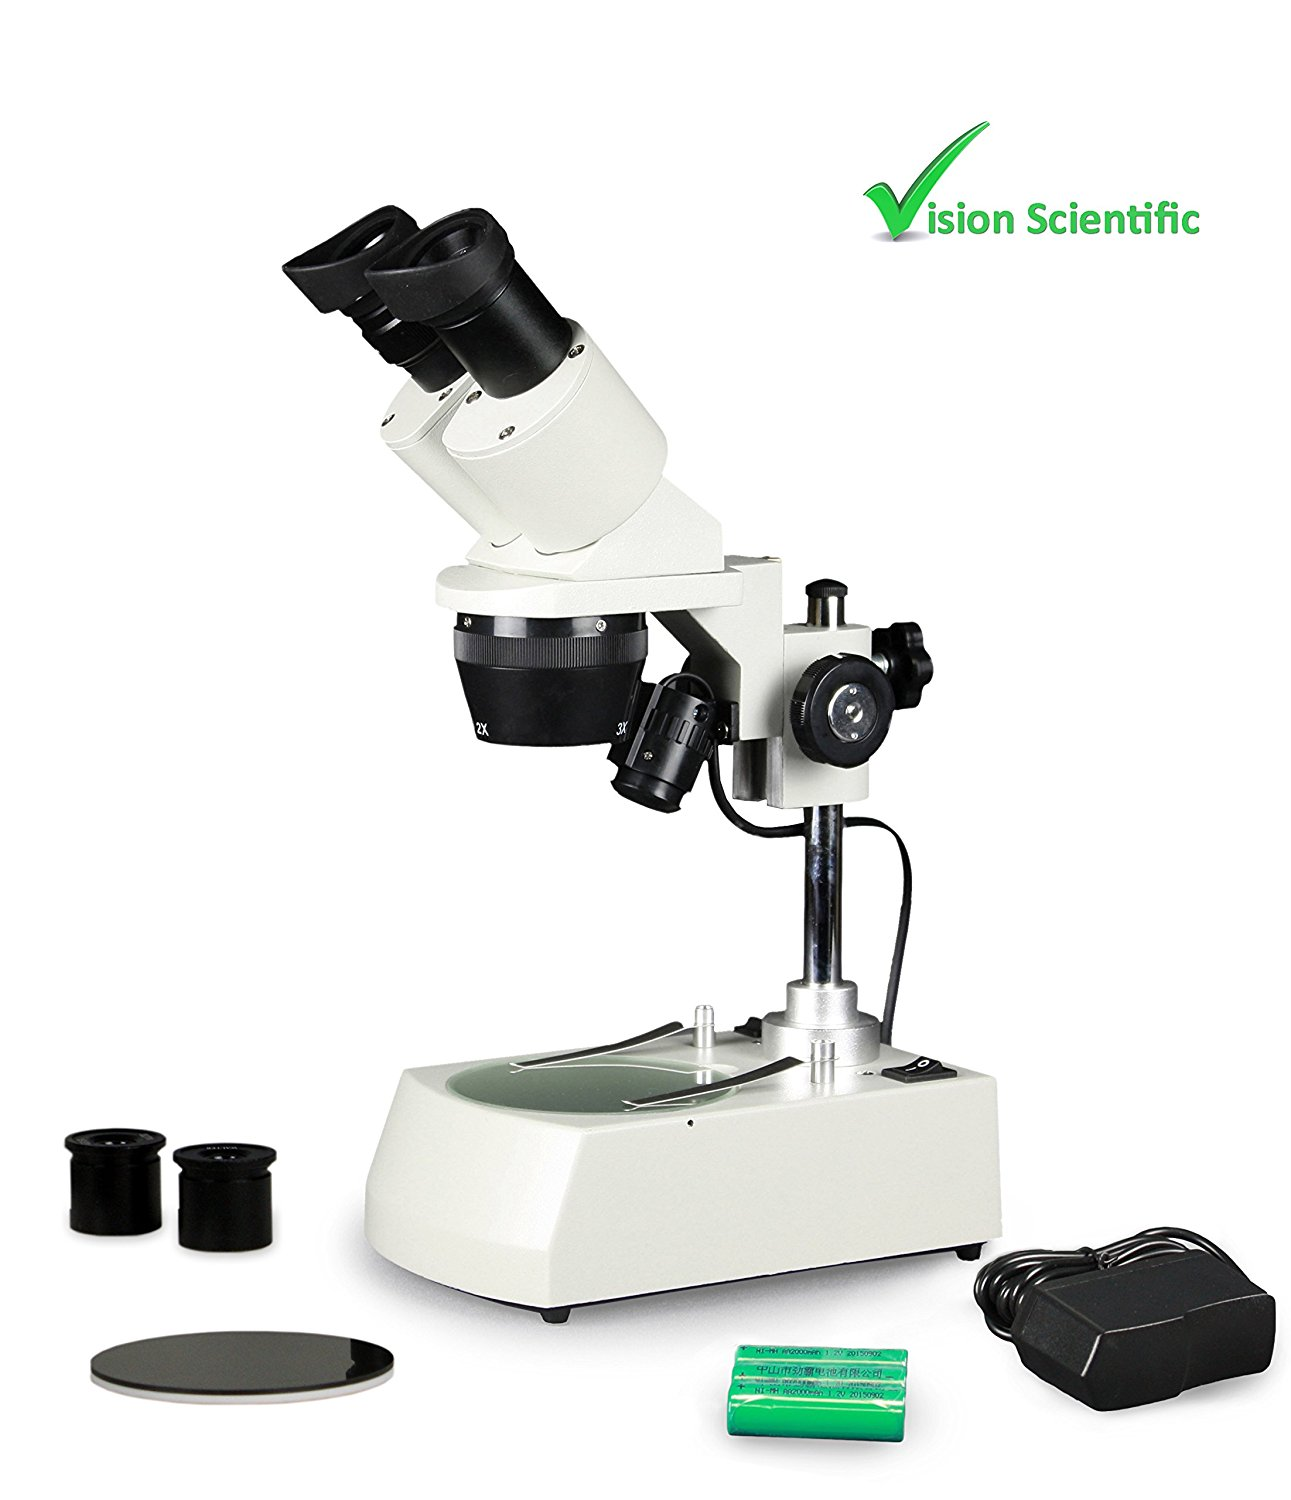 Vision Scientific VMS0002-RC-234-ES2 Tri-Power Binocular Stereo Microscope, 2x, 3x, 4x Objectives, Pair of 10x and 20x WF Eyepieces, 20x–80x Magnification, LED Illumination, Rechargeable Battery